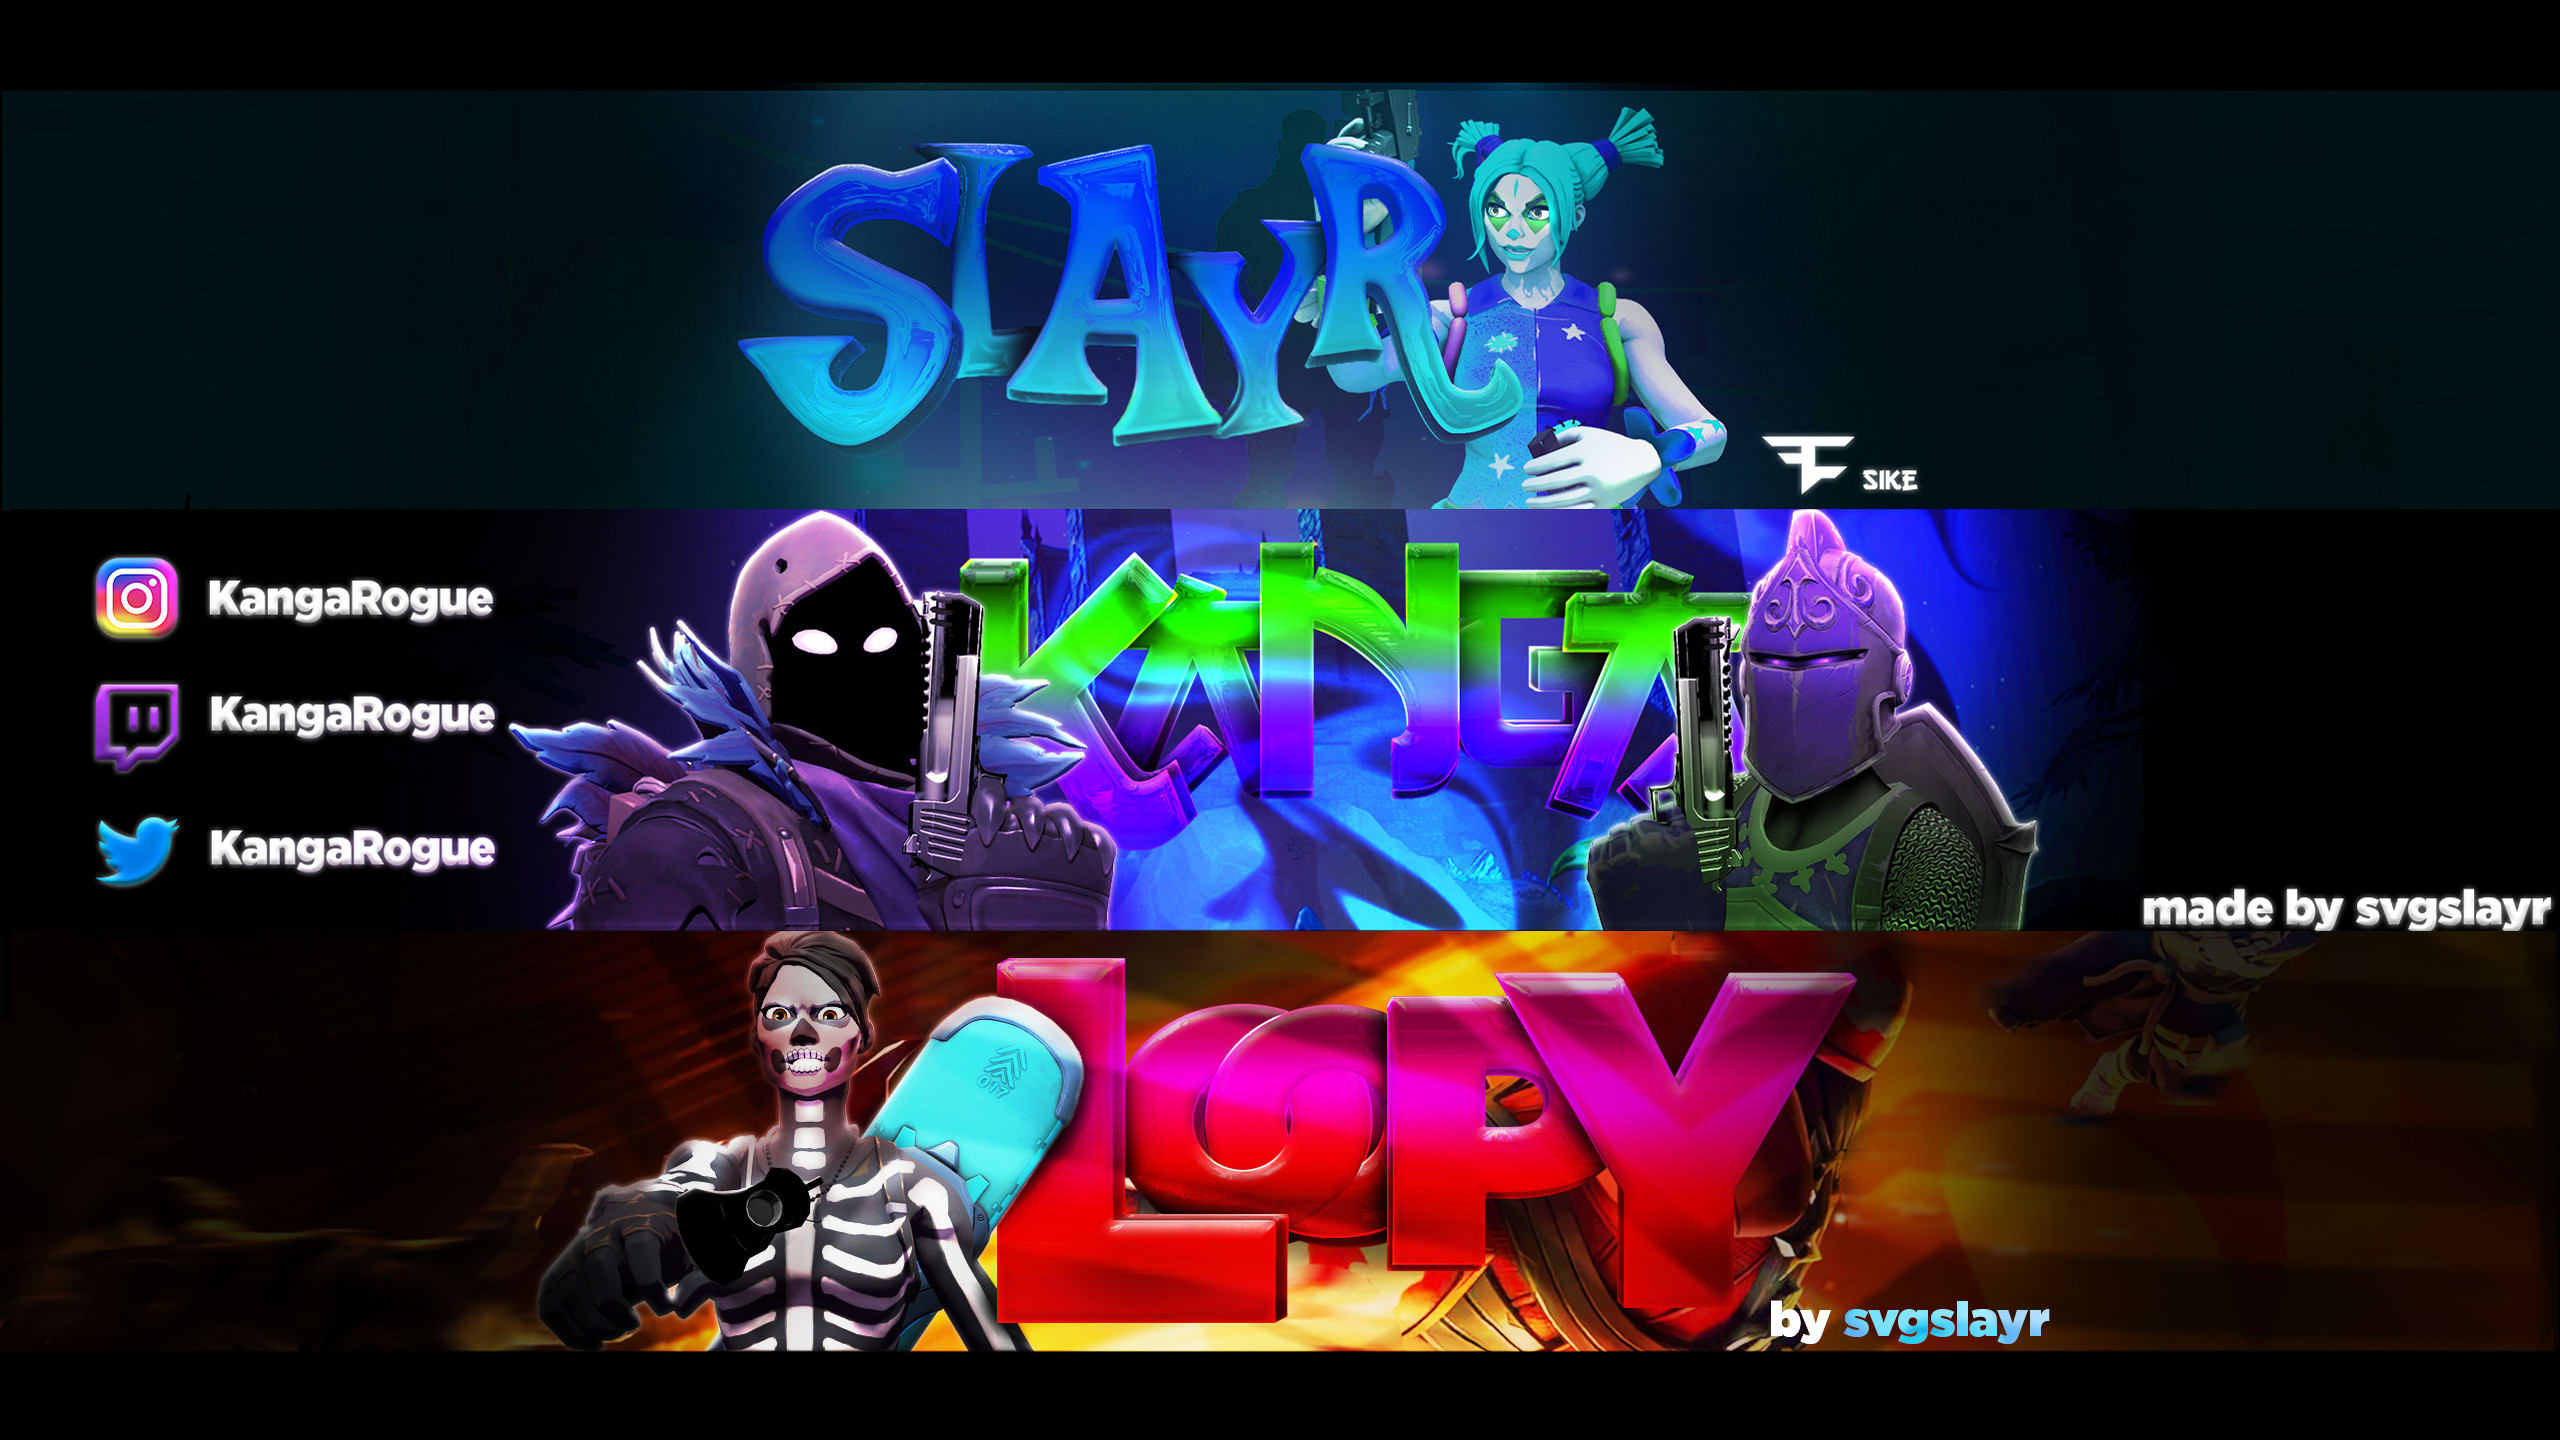 Design Hd Youtube Logo And Banner By Svgslayr